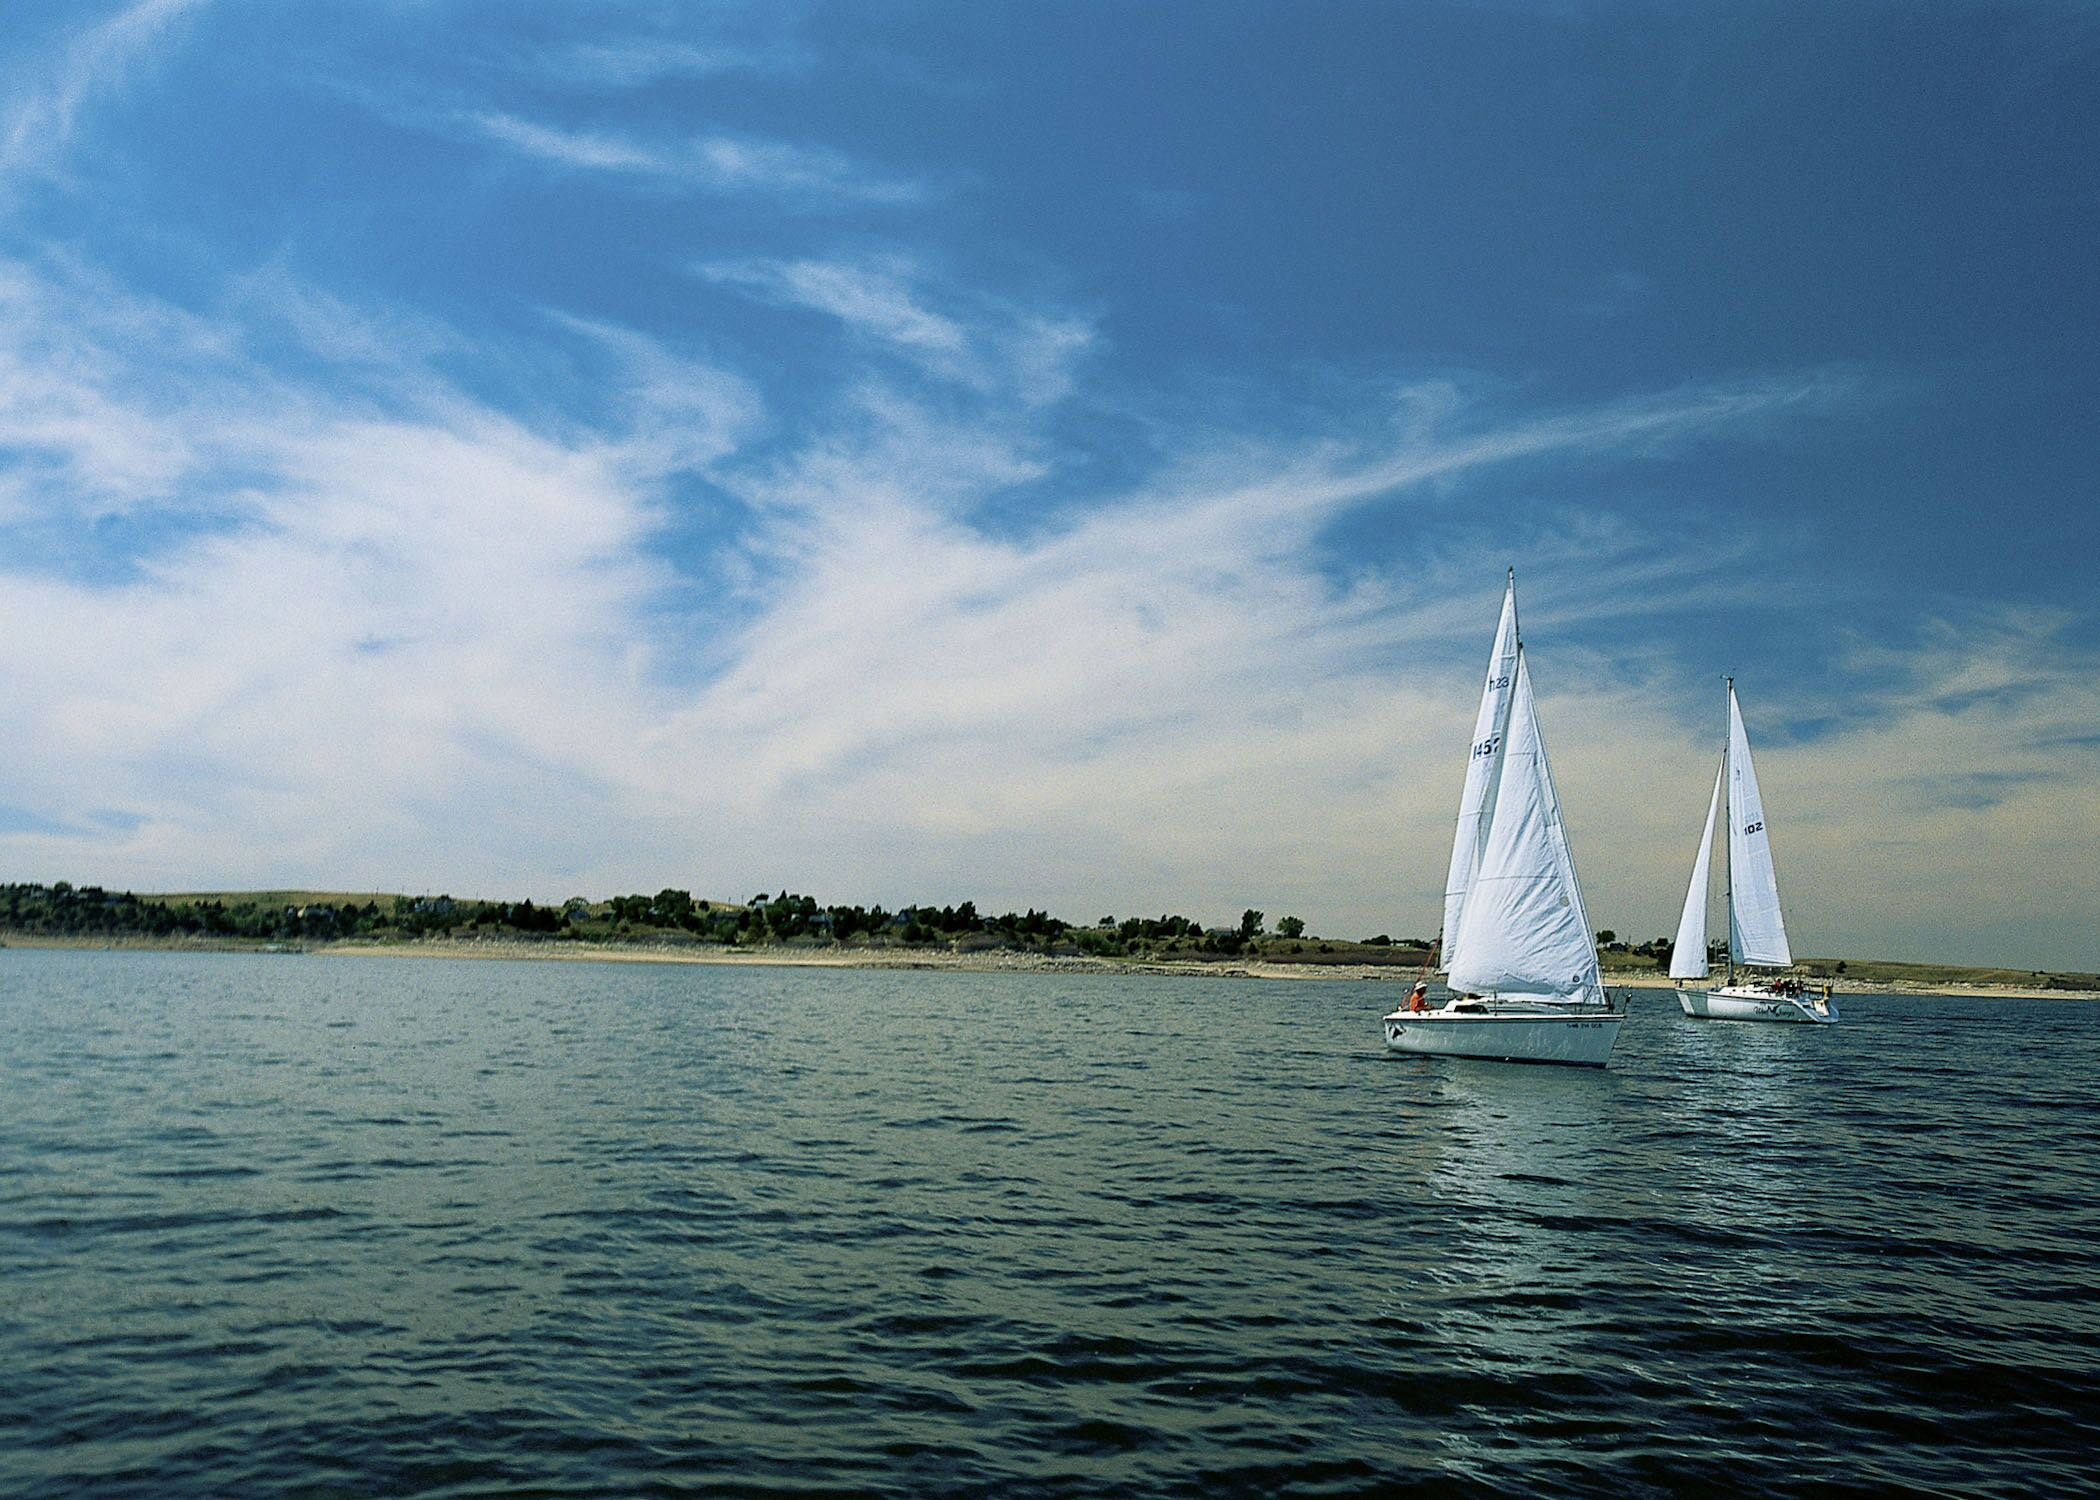 Sailing on Lake McConaughy in Nebraksa